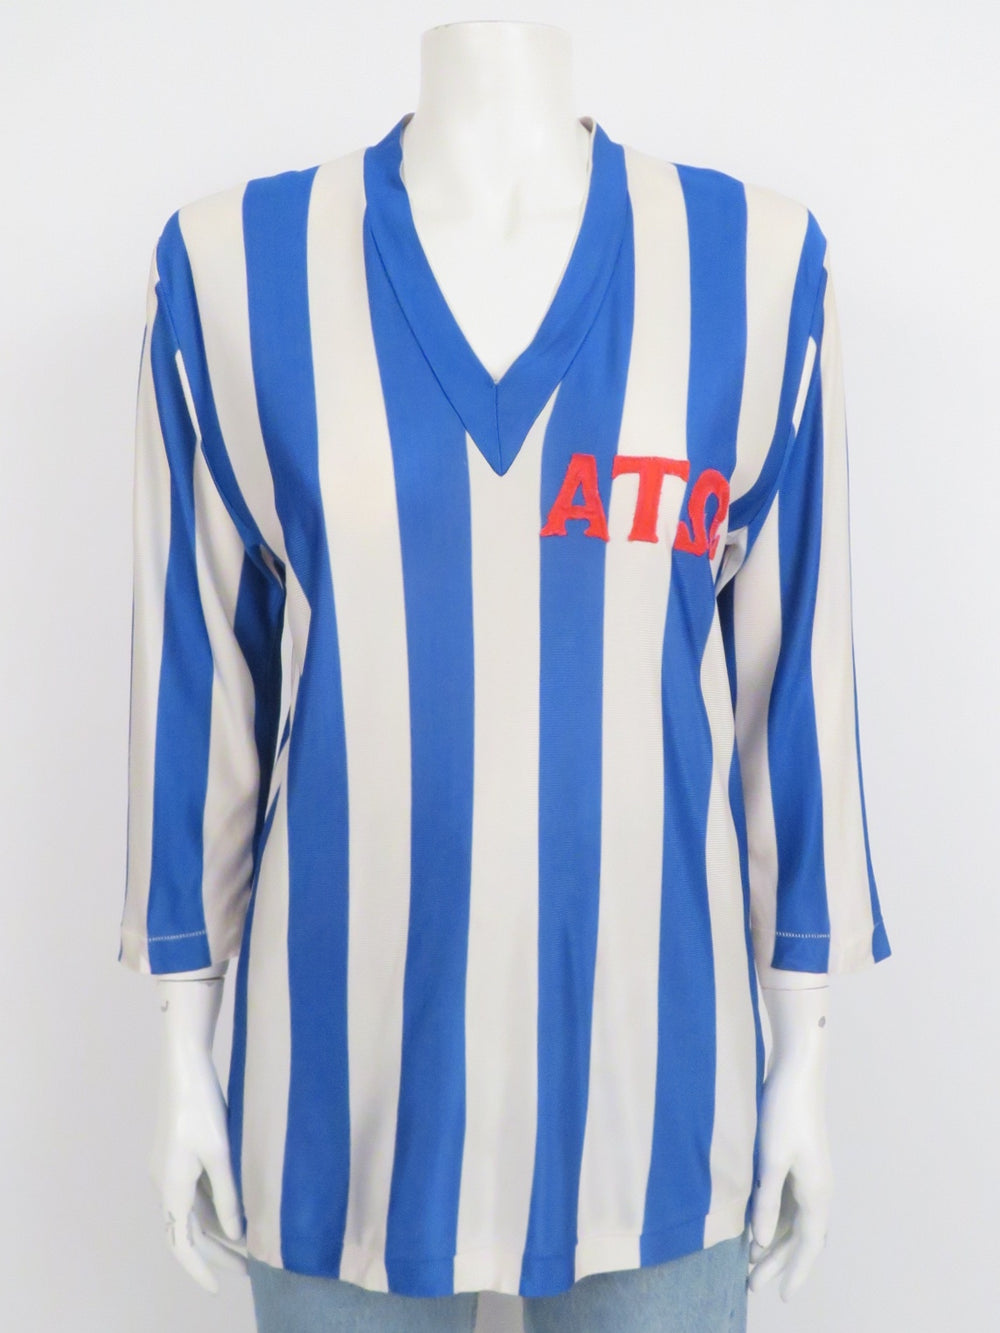 vintage blue and white striped knit fraternity jersey. features greek letter patches at front and v-neckline. elbow-length sleeves, regular cut.